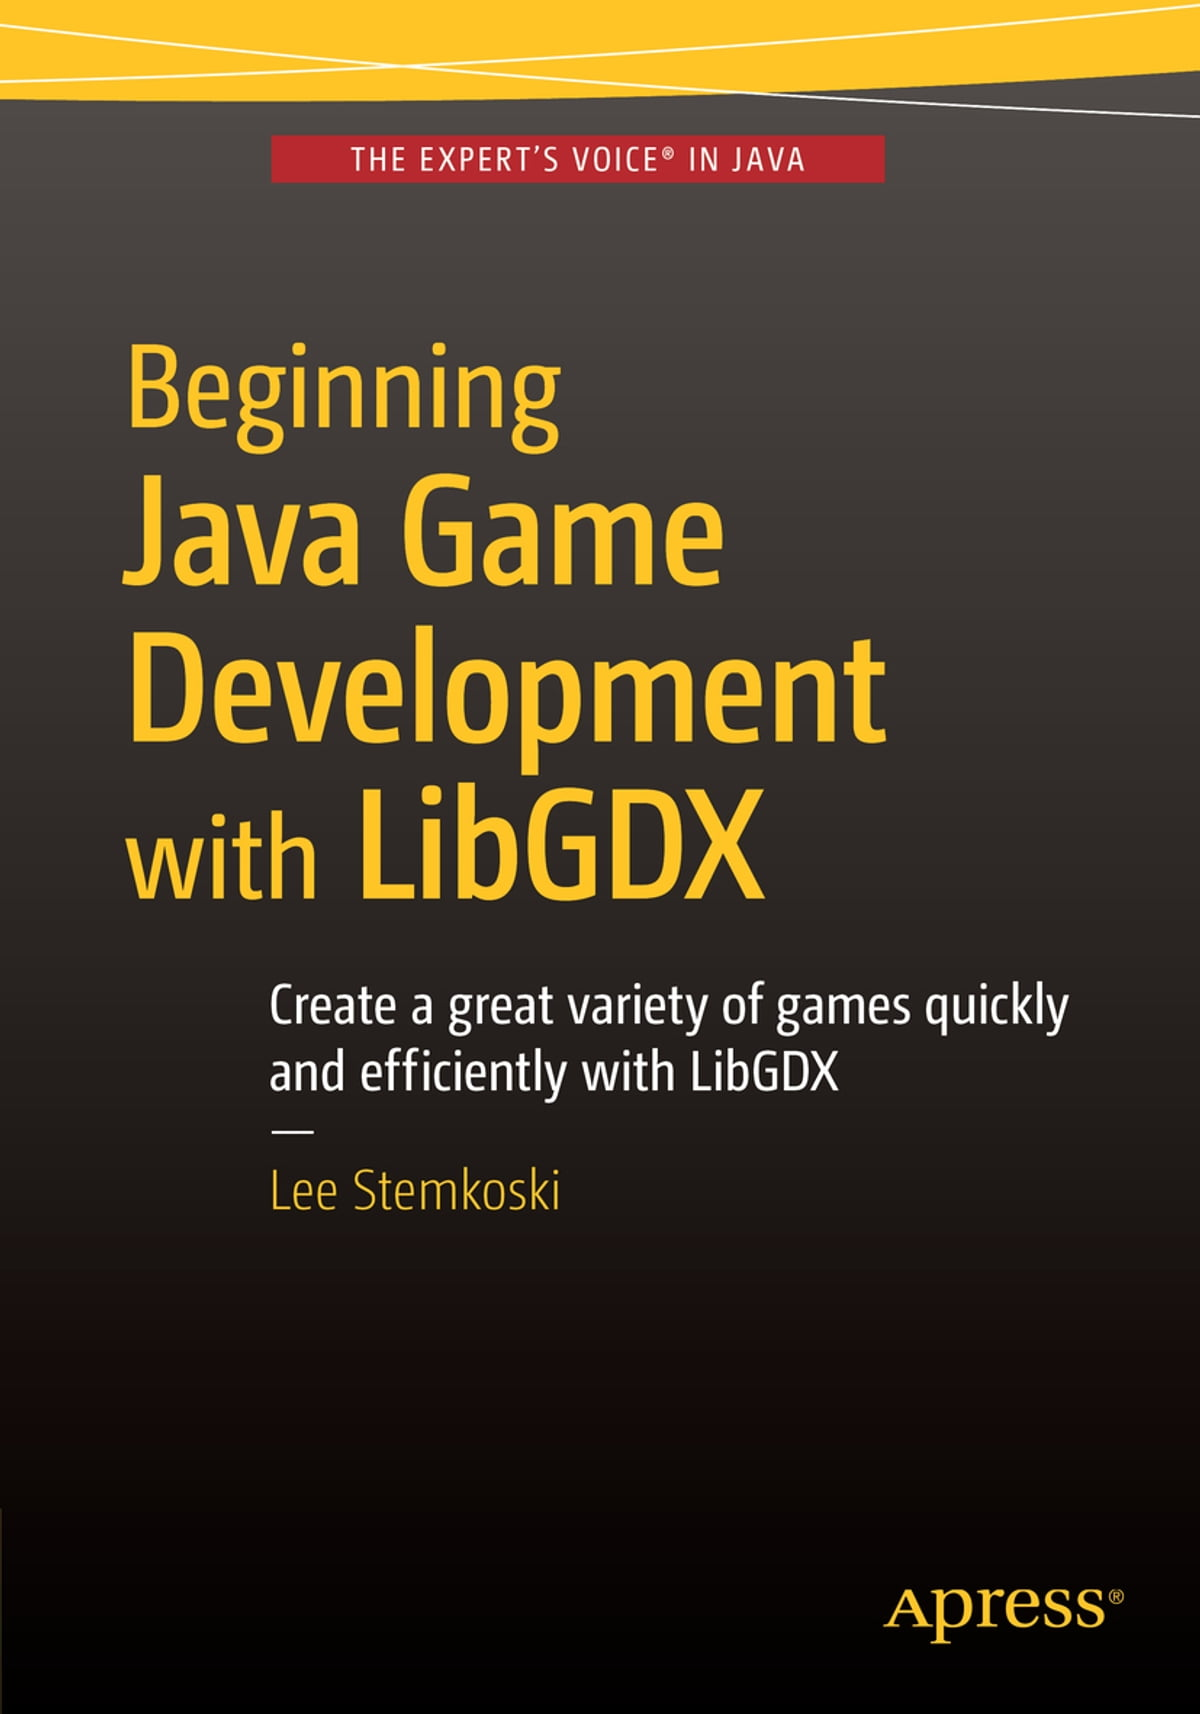 Beginning Java Game Development with LibGDX eBook by LEE STEMKOSKI -  9781484215005 | Rakuten Kobo